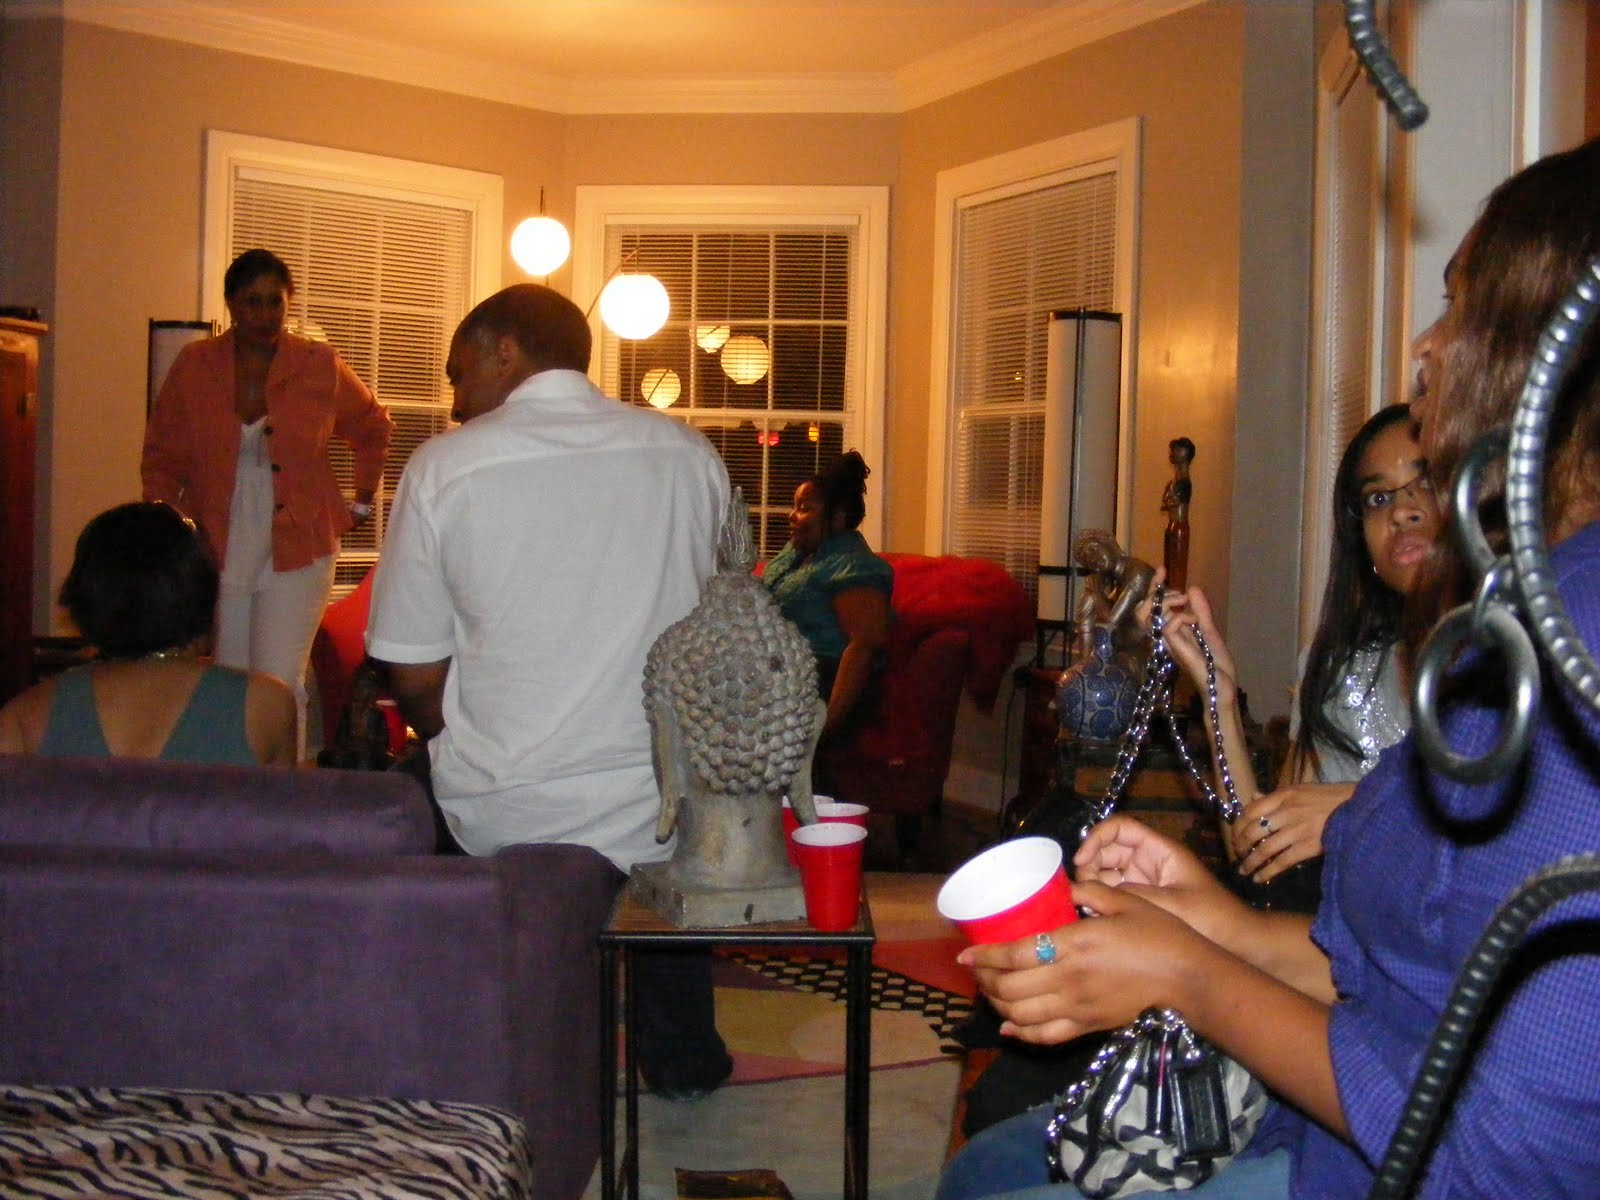 Because Of The Rain Houston Association Black Journalists Backyard Party Turned Into A House Saturday Evening